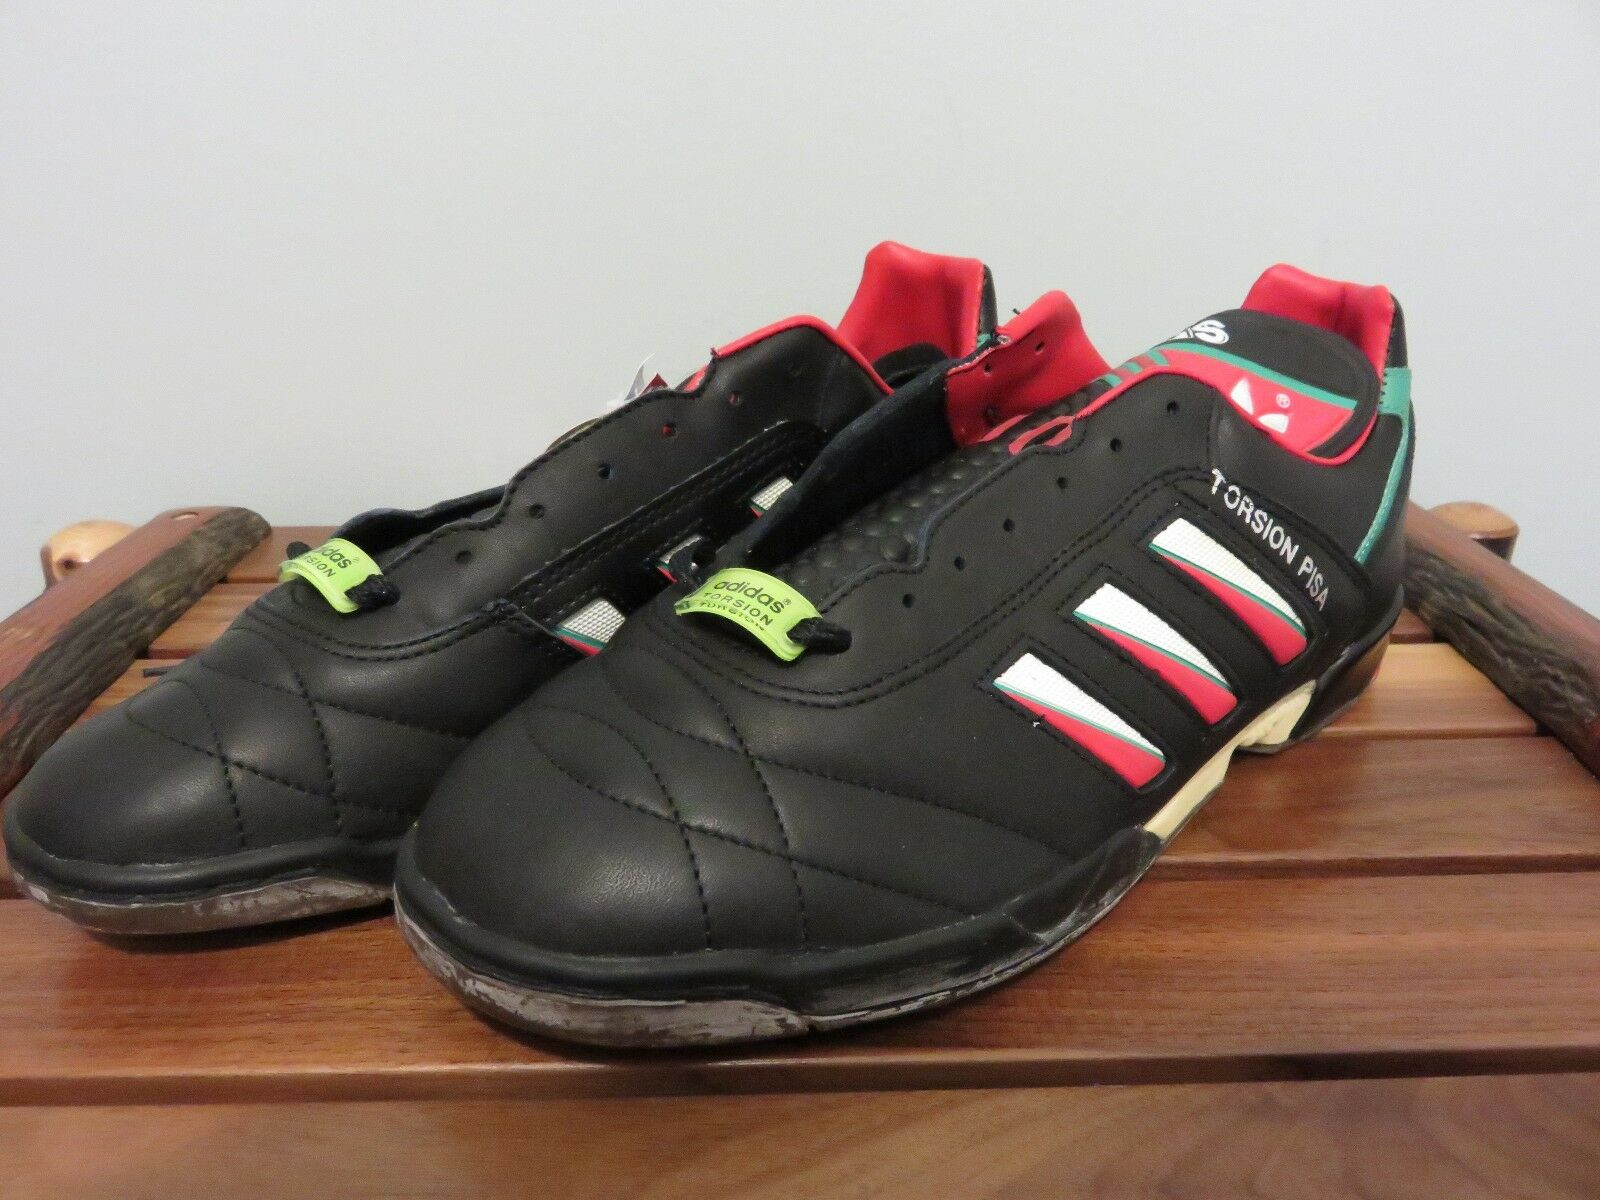 NOS NWT Adidas Torsion PISA Soccer shoes Extremely RARE Tri-Foil 1990 World Cup